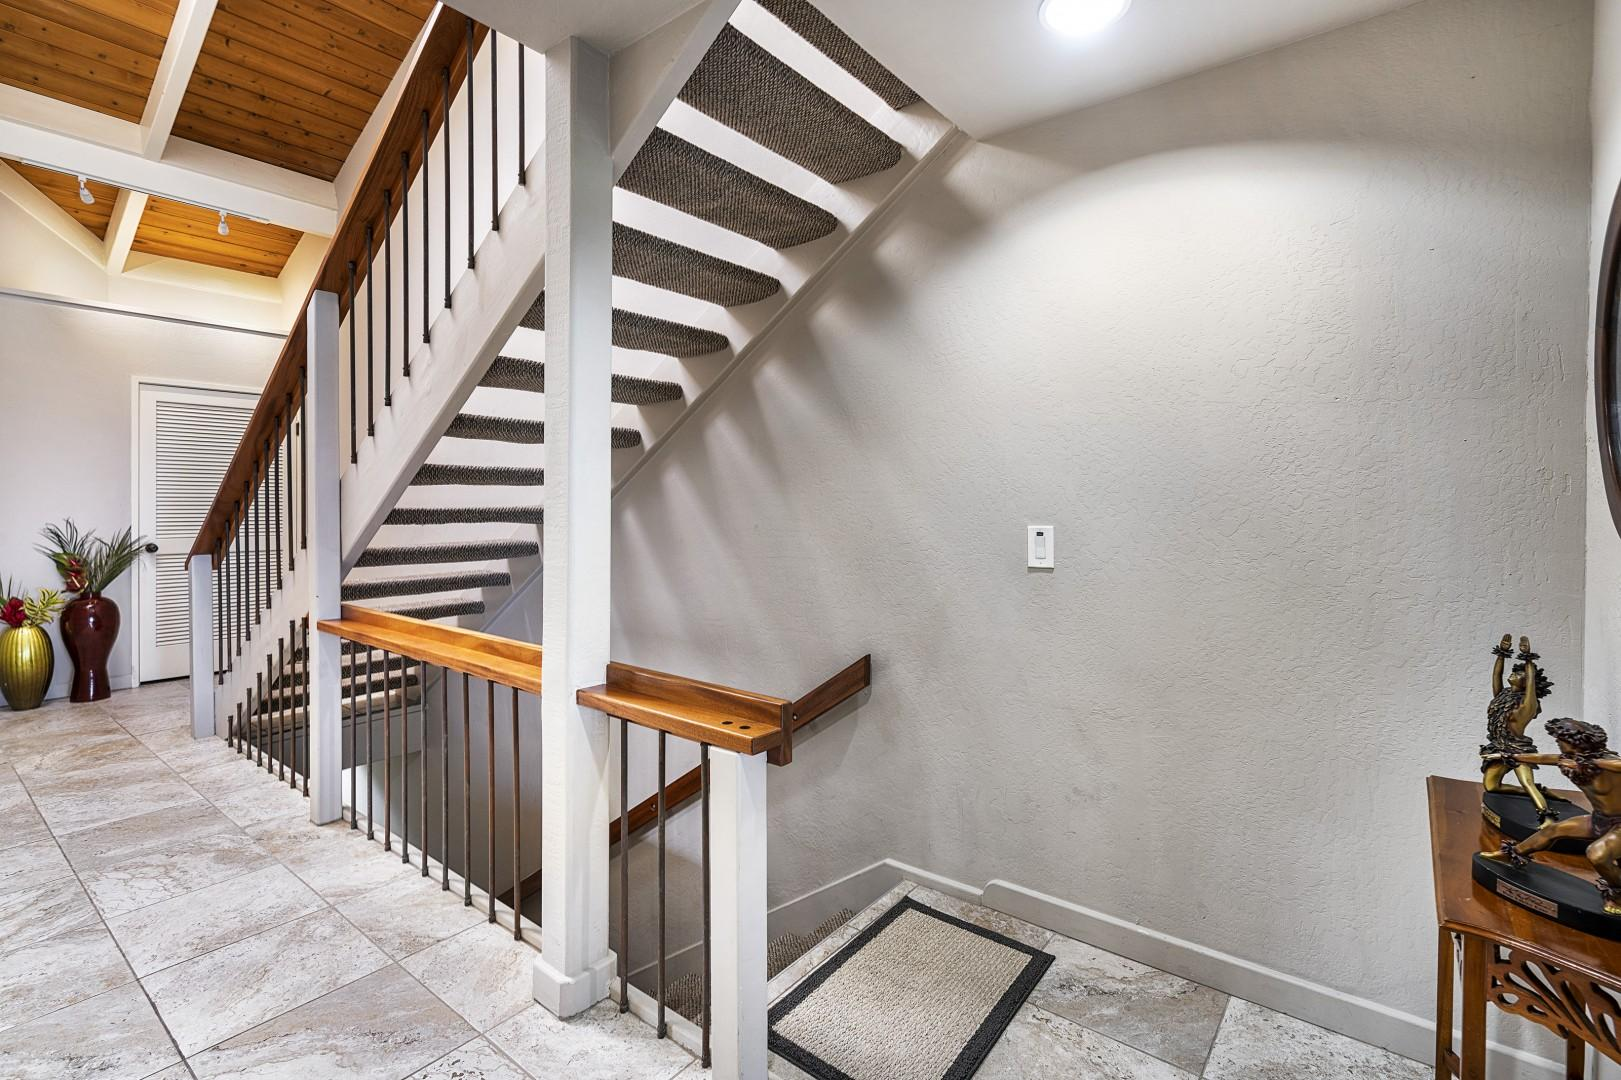 Stairs leading from the entry up to the Master bedroom loft